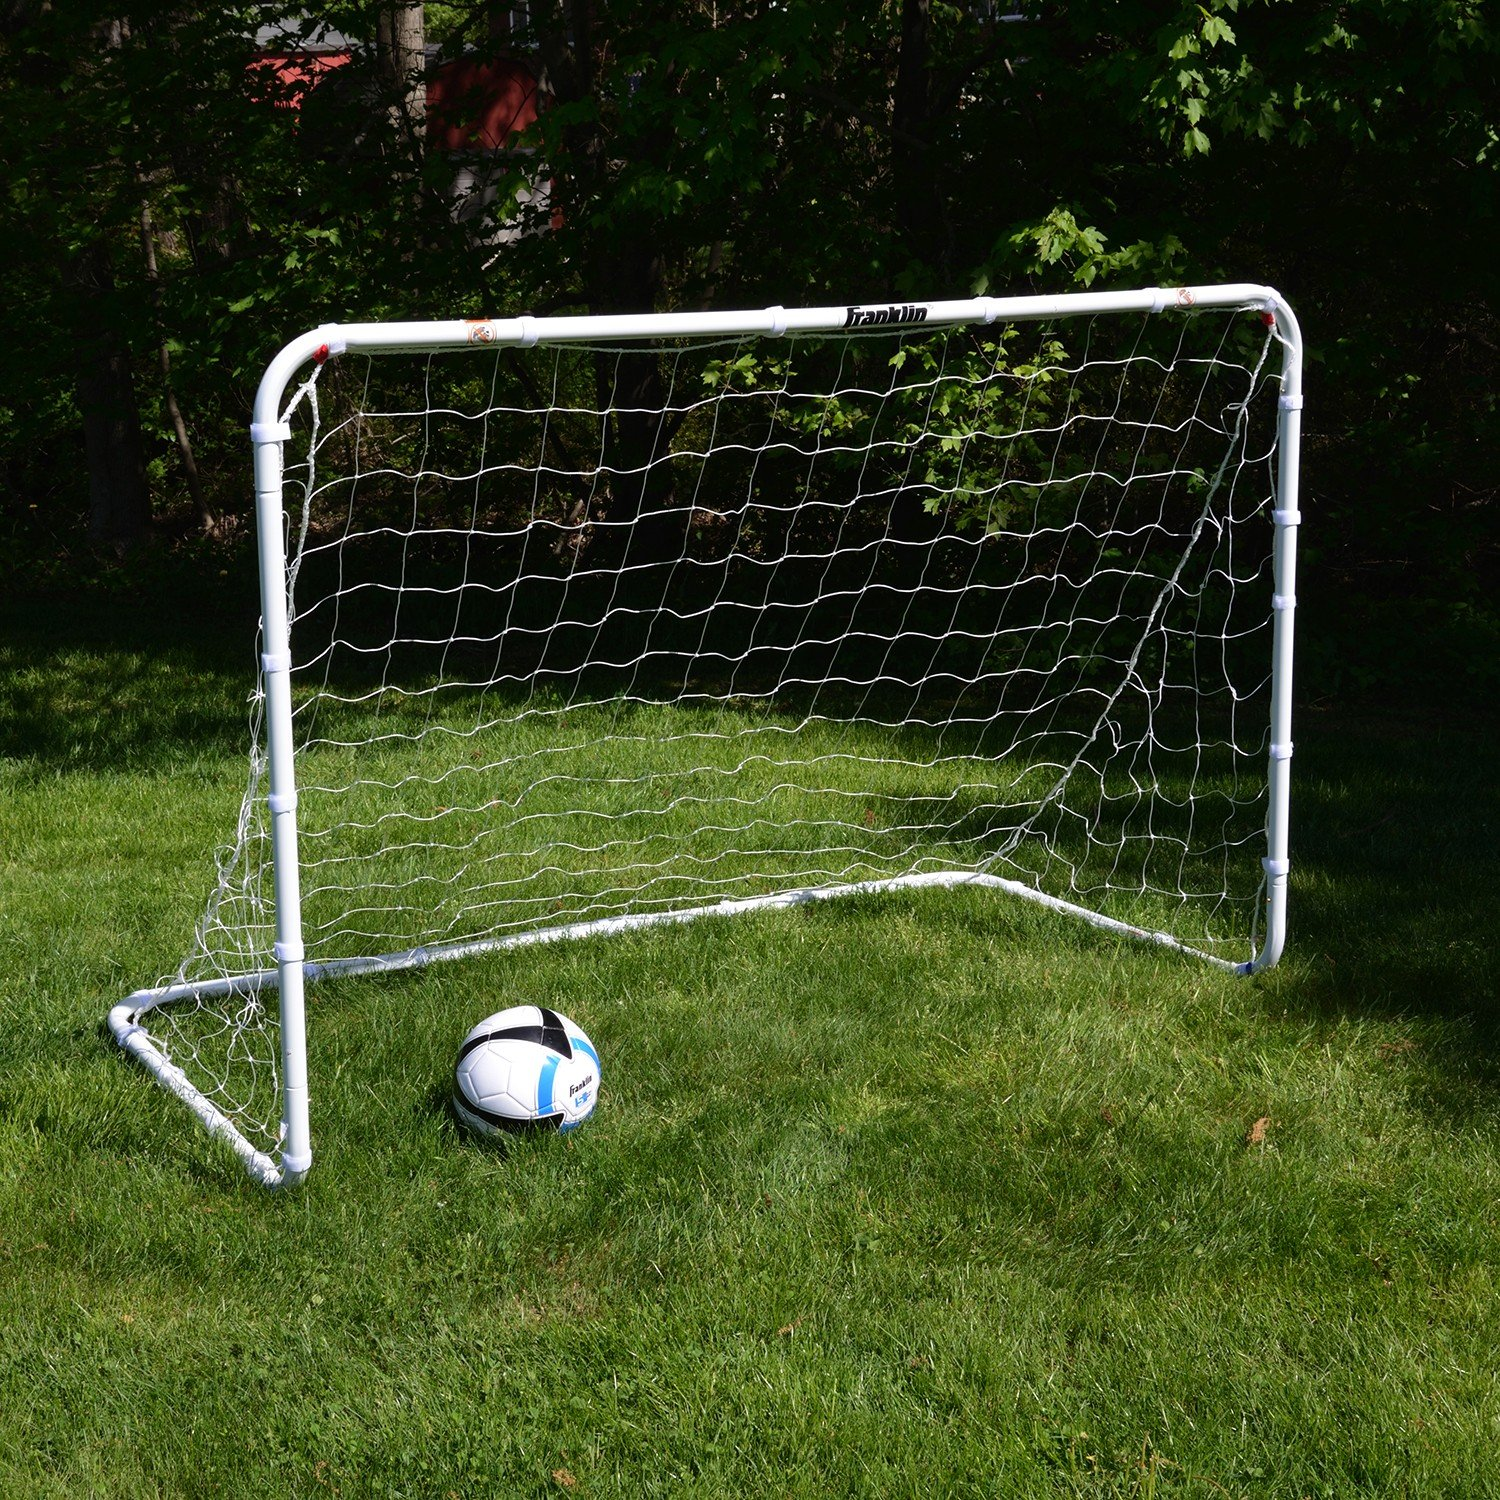 Franklin Sports Competition Soccer Goal – Soccer Net – Soccer Goal for Backyard – Steel Construction – 6 Ft by 4 Ft by Franklin Sports (Image #3)